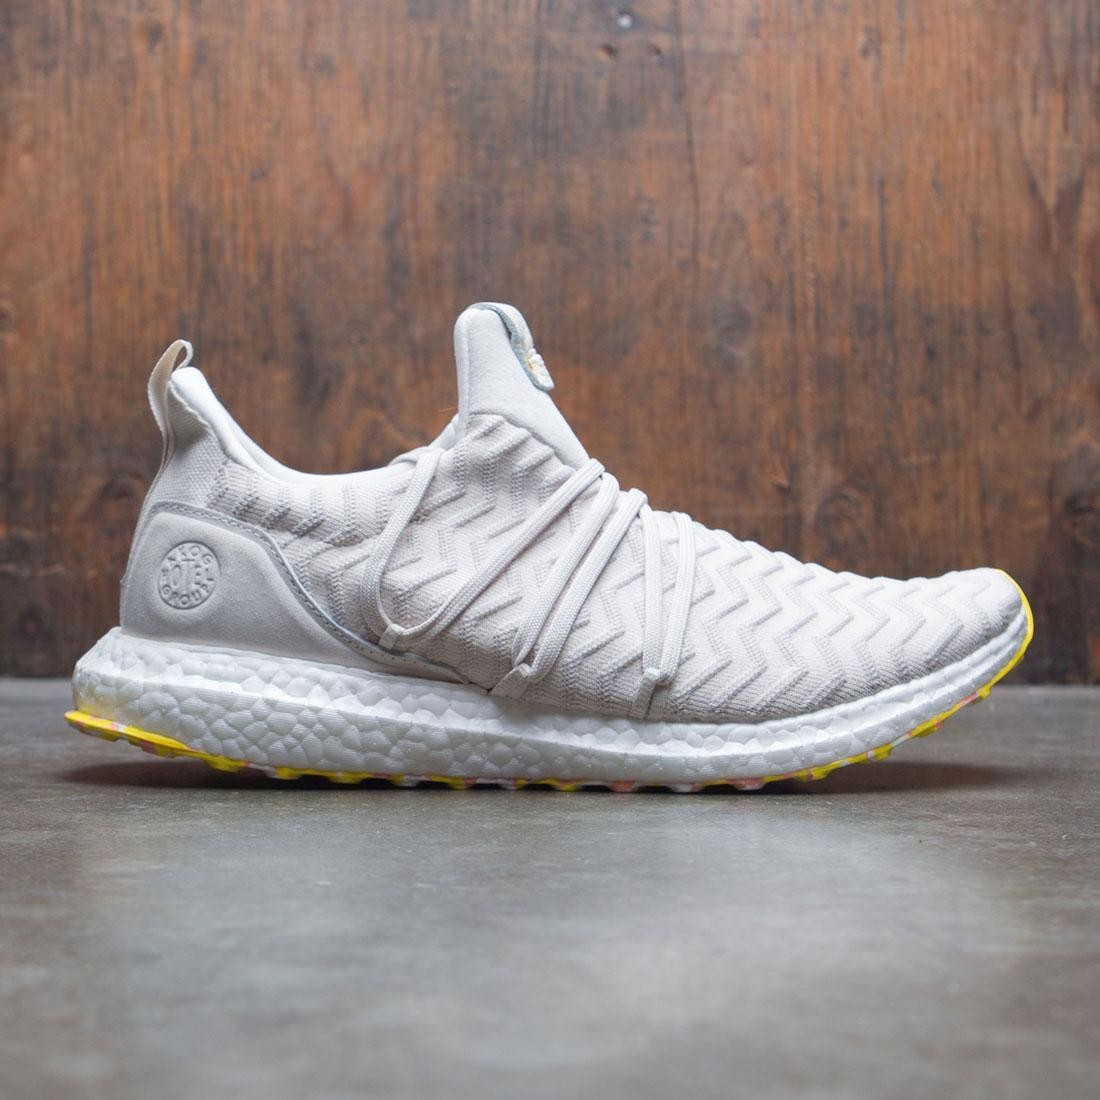 wholesale dealer 3ddaa e0763 Adidas Consortium x A Kind Of Guise Men UltraBOOST AKOG (white / core white  / punjab)